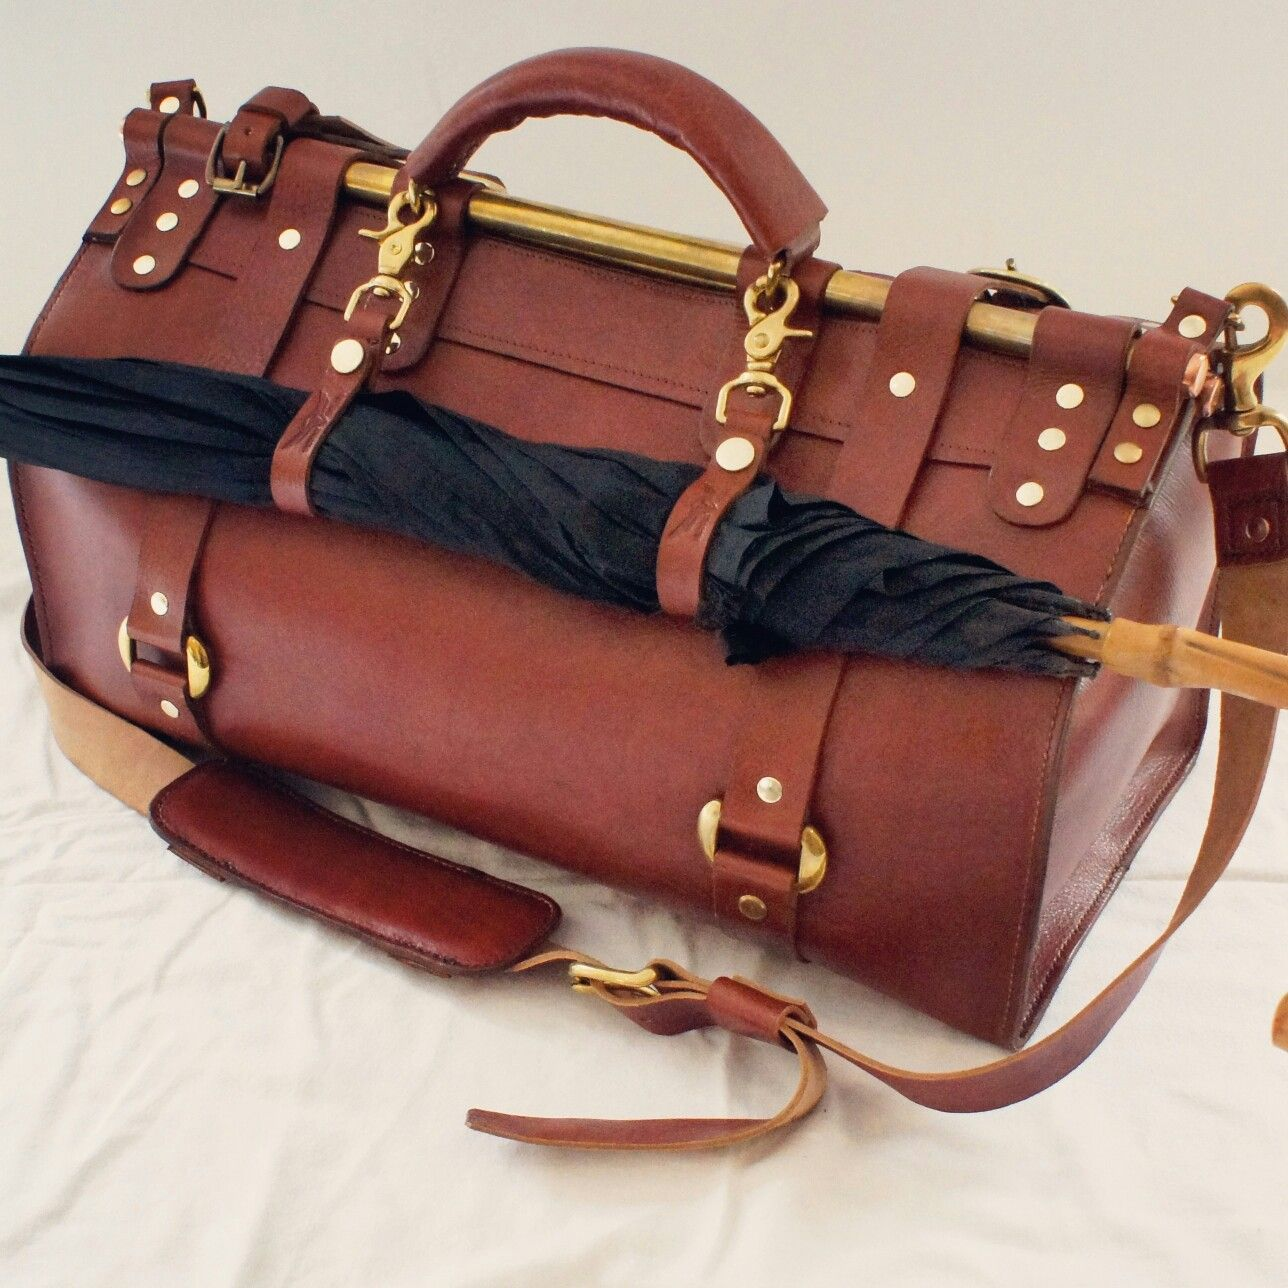 The pullman gentlemanus leather travel holdall by victory